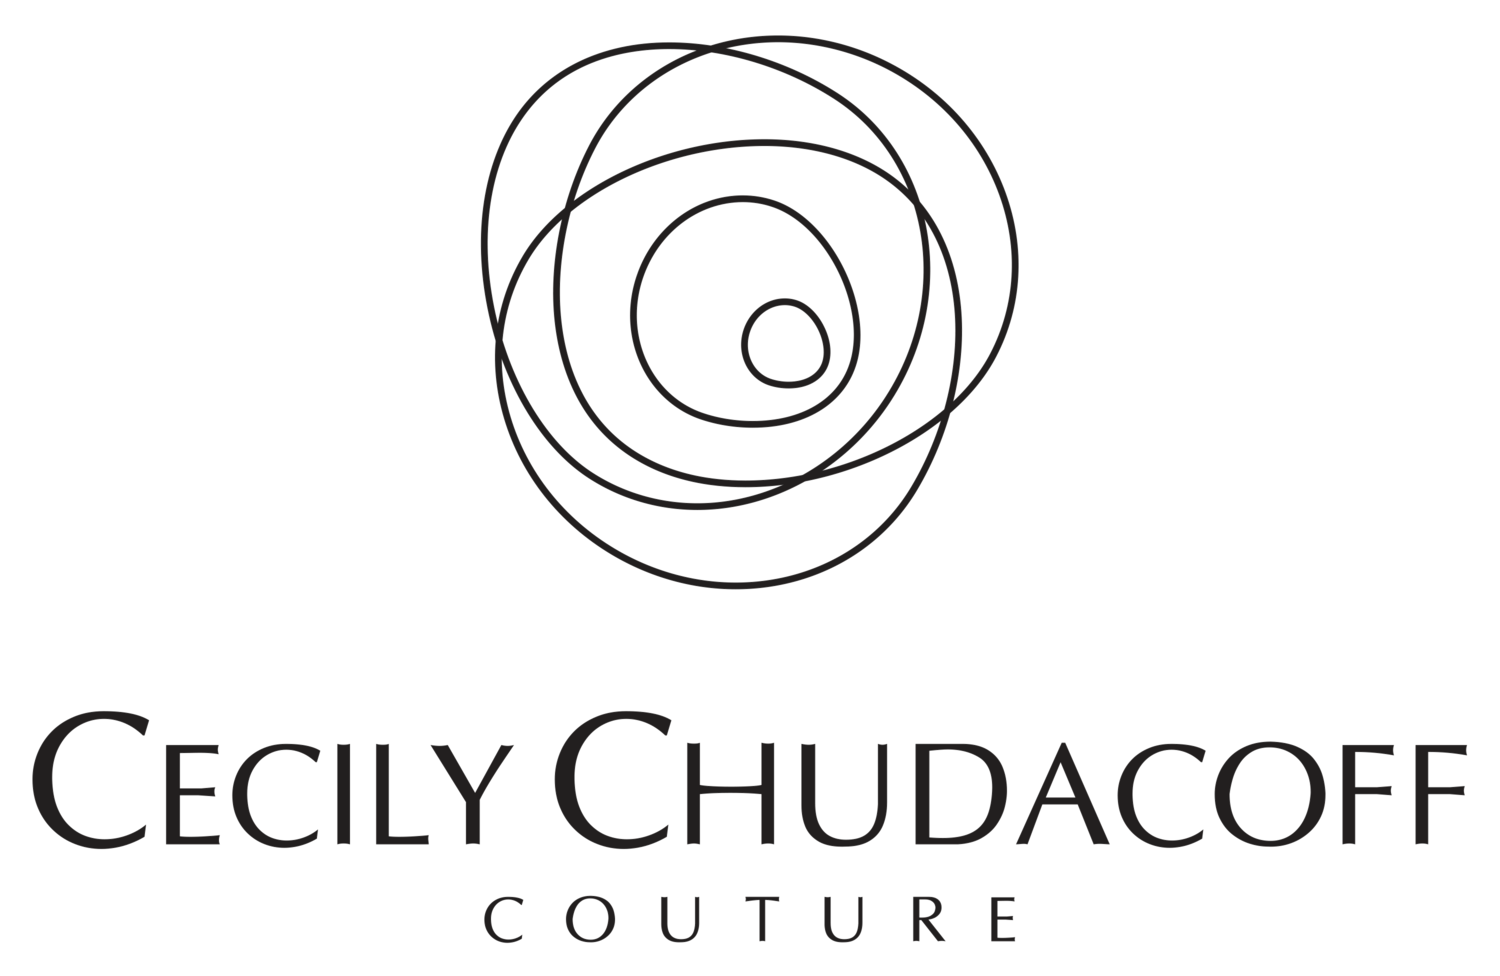 Cecily Chudacoff Couture